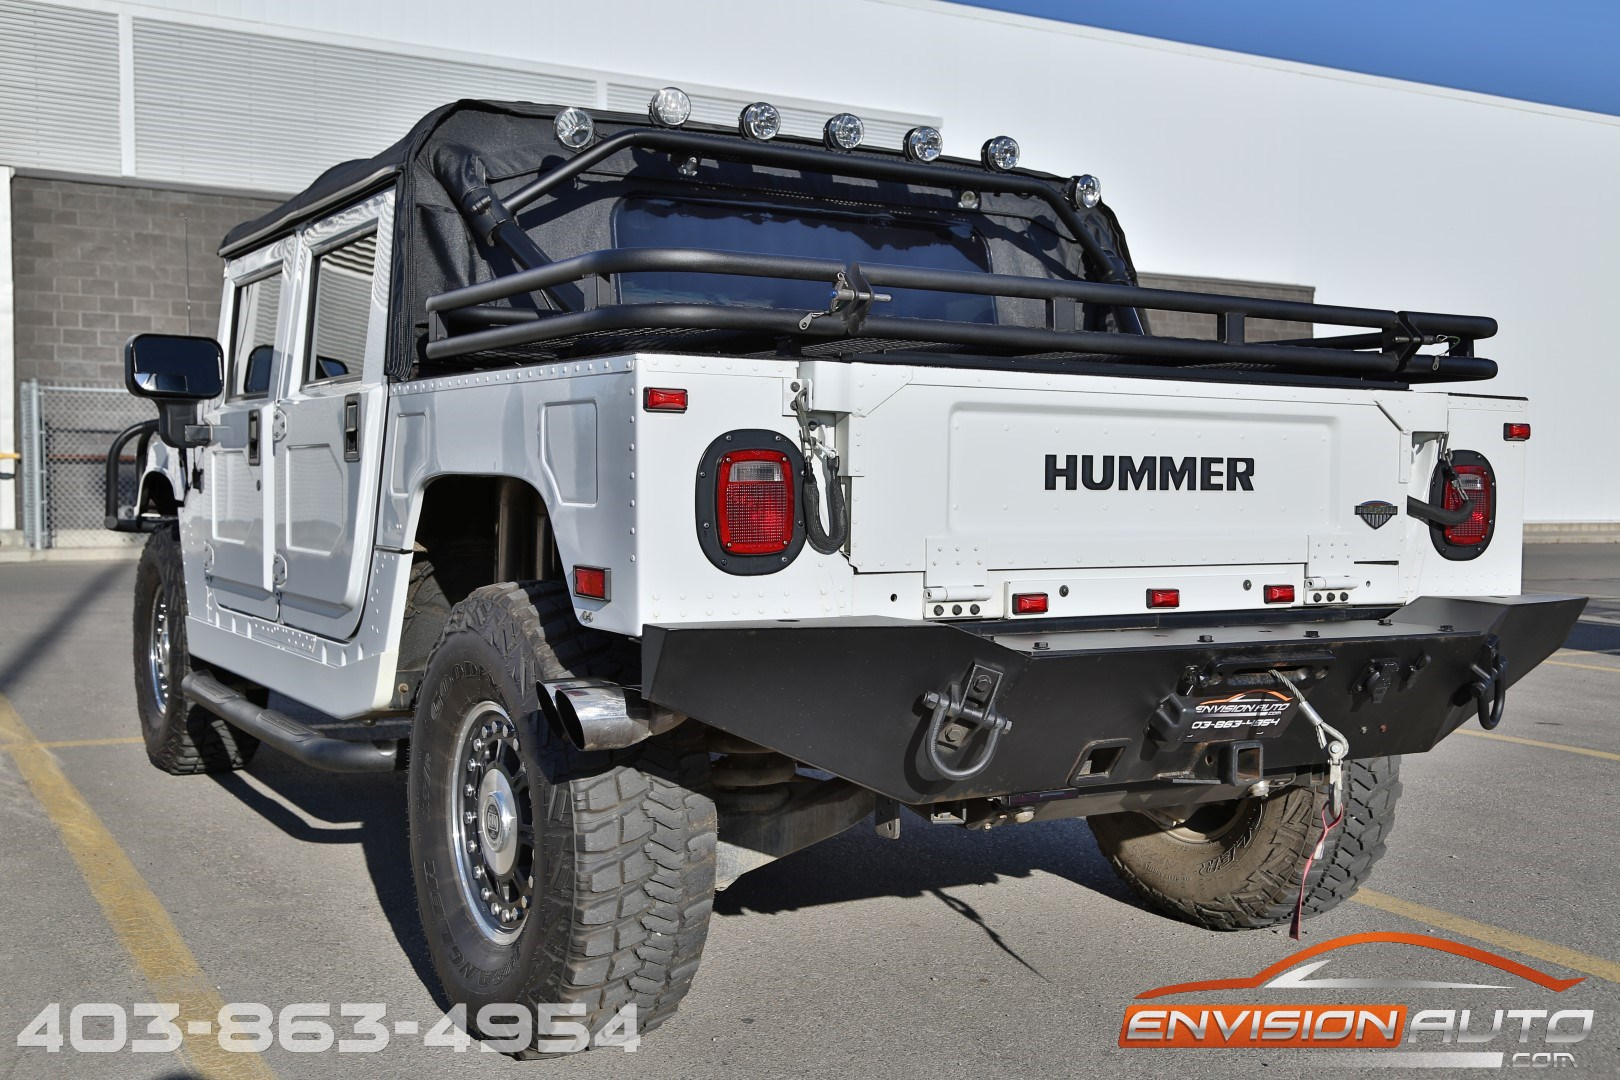 2006 H1 Hummer Alpha Open Top 6 6l Duramax Final Year Envision Auto